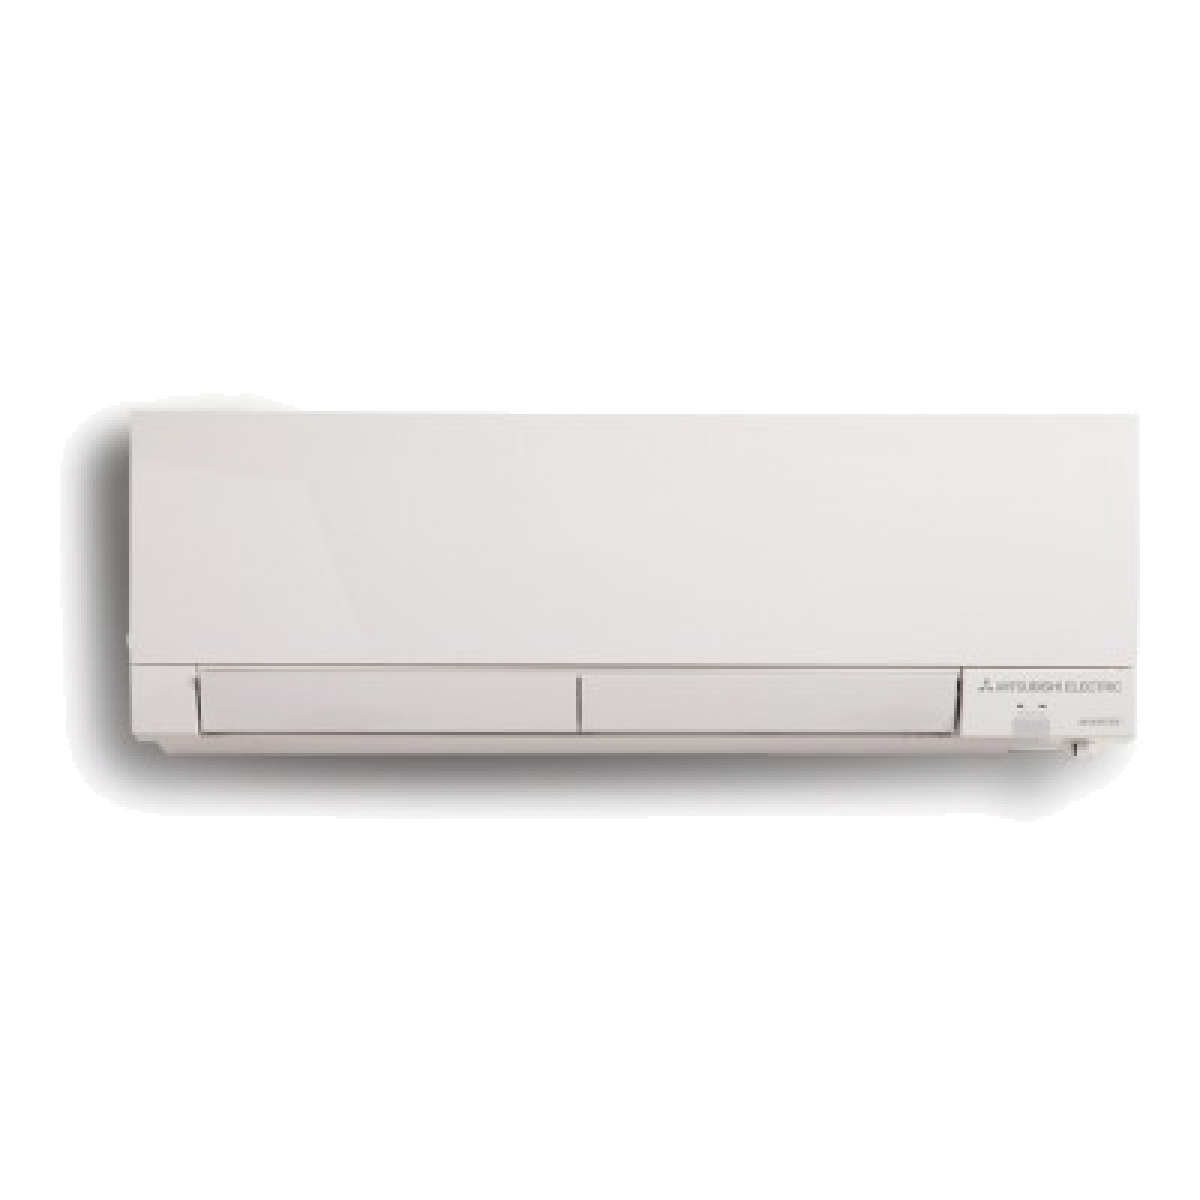 #70665B Mitsubishi 5 Zone 42K BTU Heat Pump Hyper Heat With Up To  Best 11763 Ductless Air Conditioner Mitsubishi photos with 1200x1200 px on helpvideos.info - Air Conditioners, Air Coolers and more